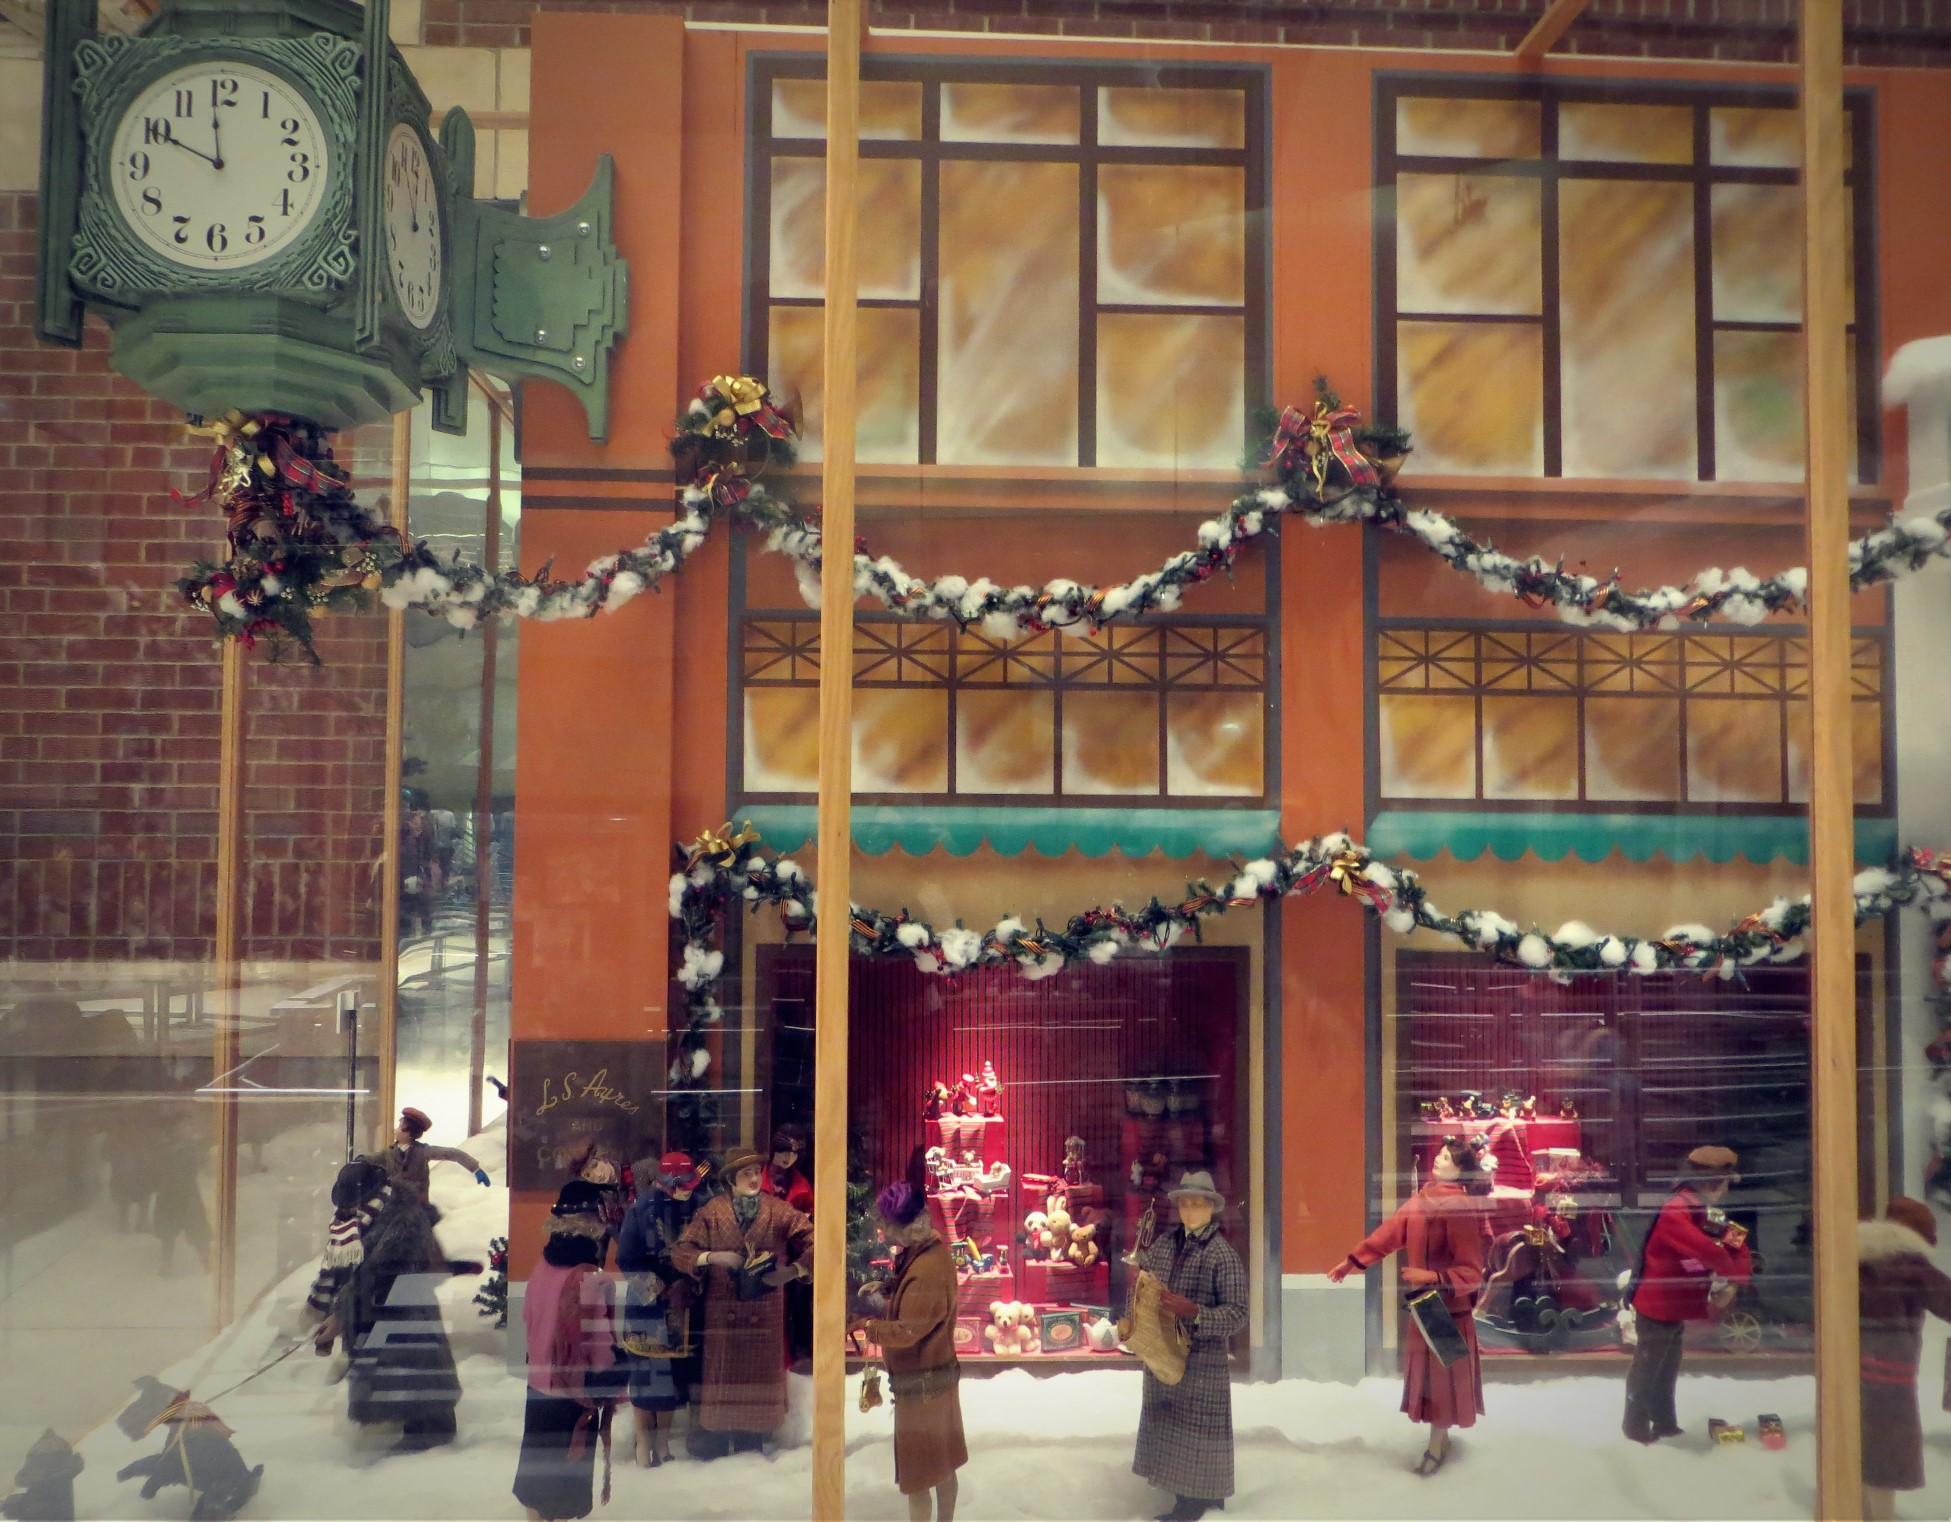 Animated window display celebrates L. S. Ayres & Co. traditions.